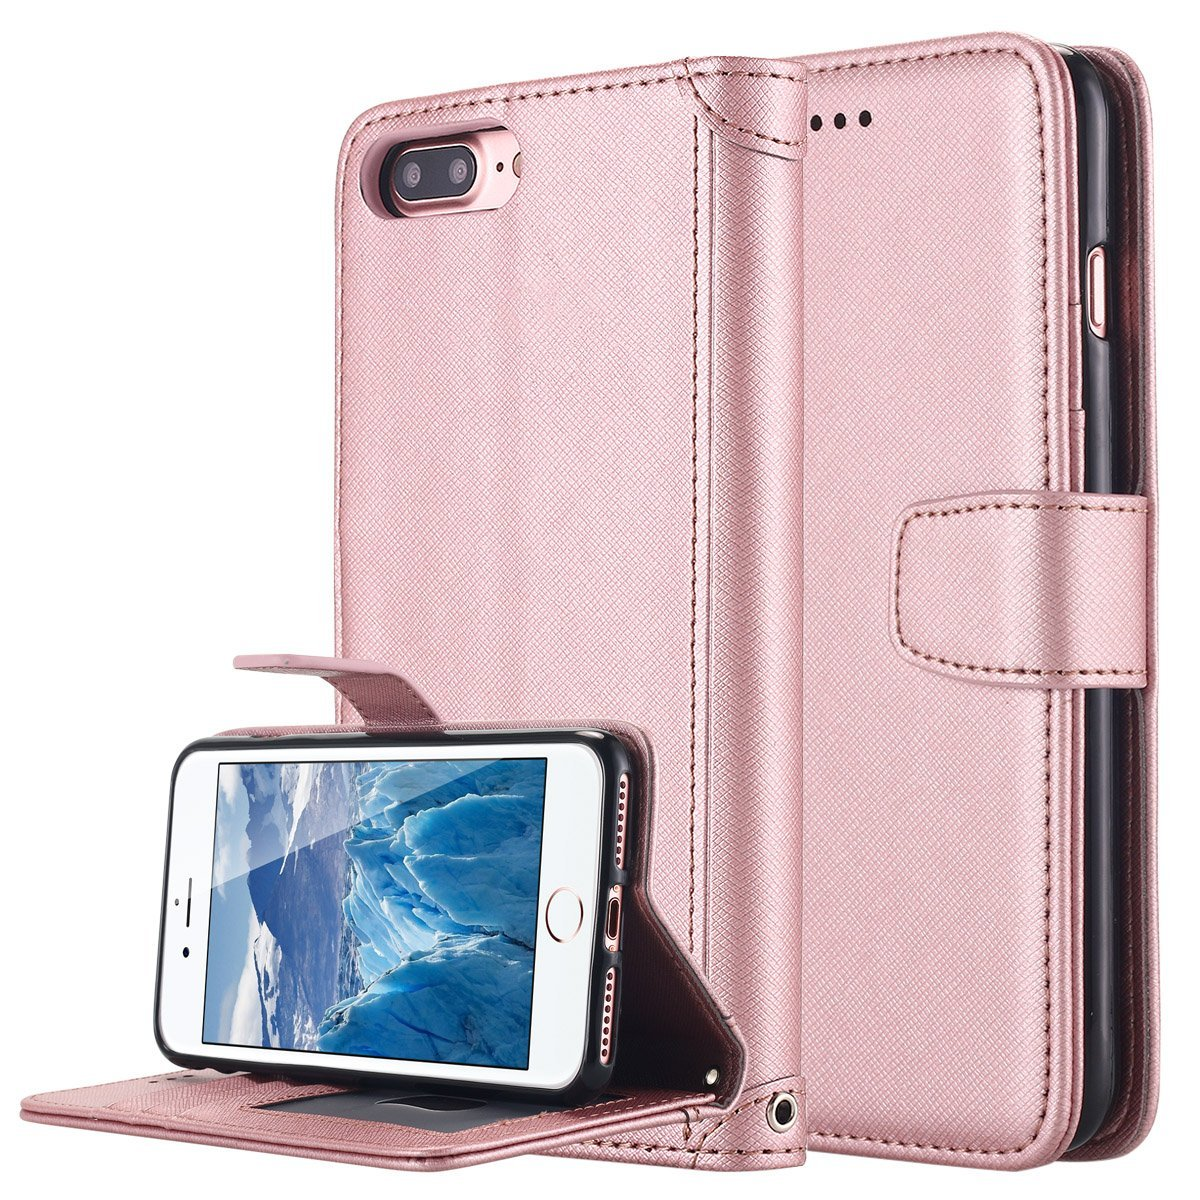 iPhone 7 Plus Case, LONTECT Premium PU Leather Wallet Case Folio Flip Stand Cover with Card slots Magnetic Closure Hand Strap for Apple iPhone 7 Plus - Rose Gold